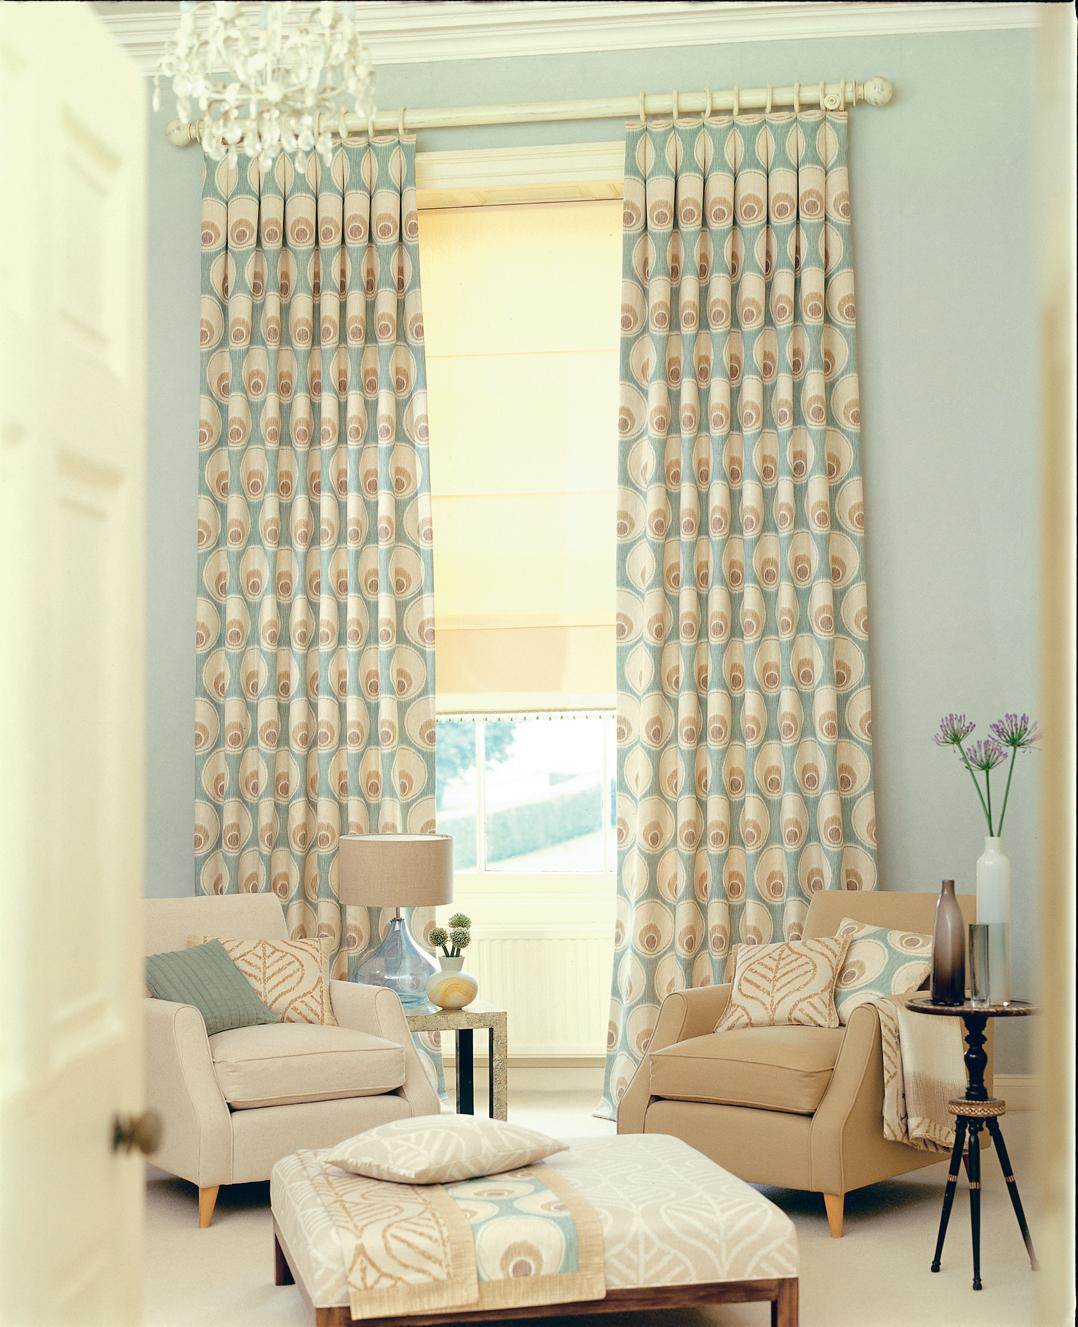 Lively Curtain Designs For Windows With Astounding Color Scheme : Living Room Curtains Ideas Are Very Good